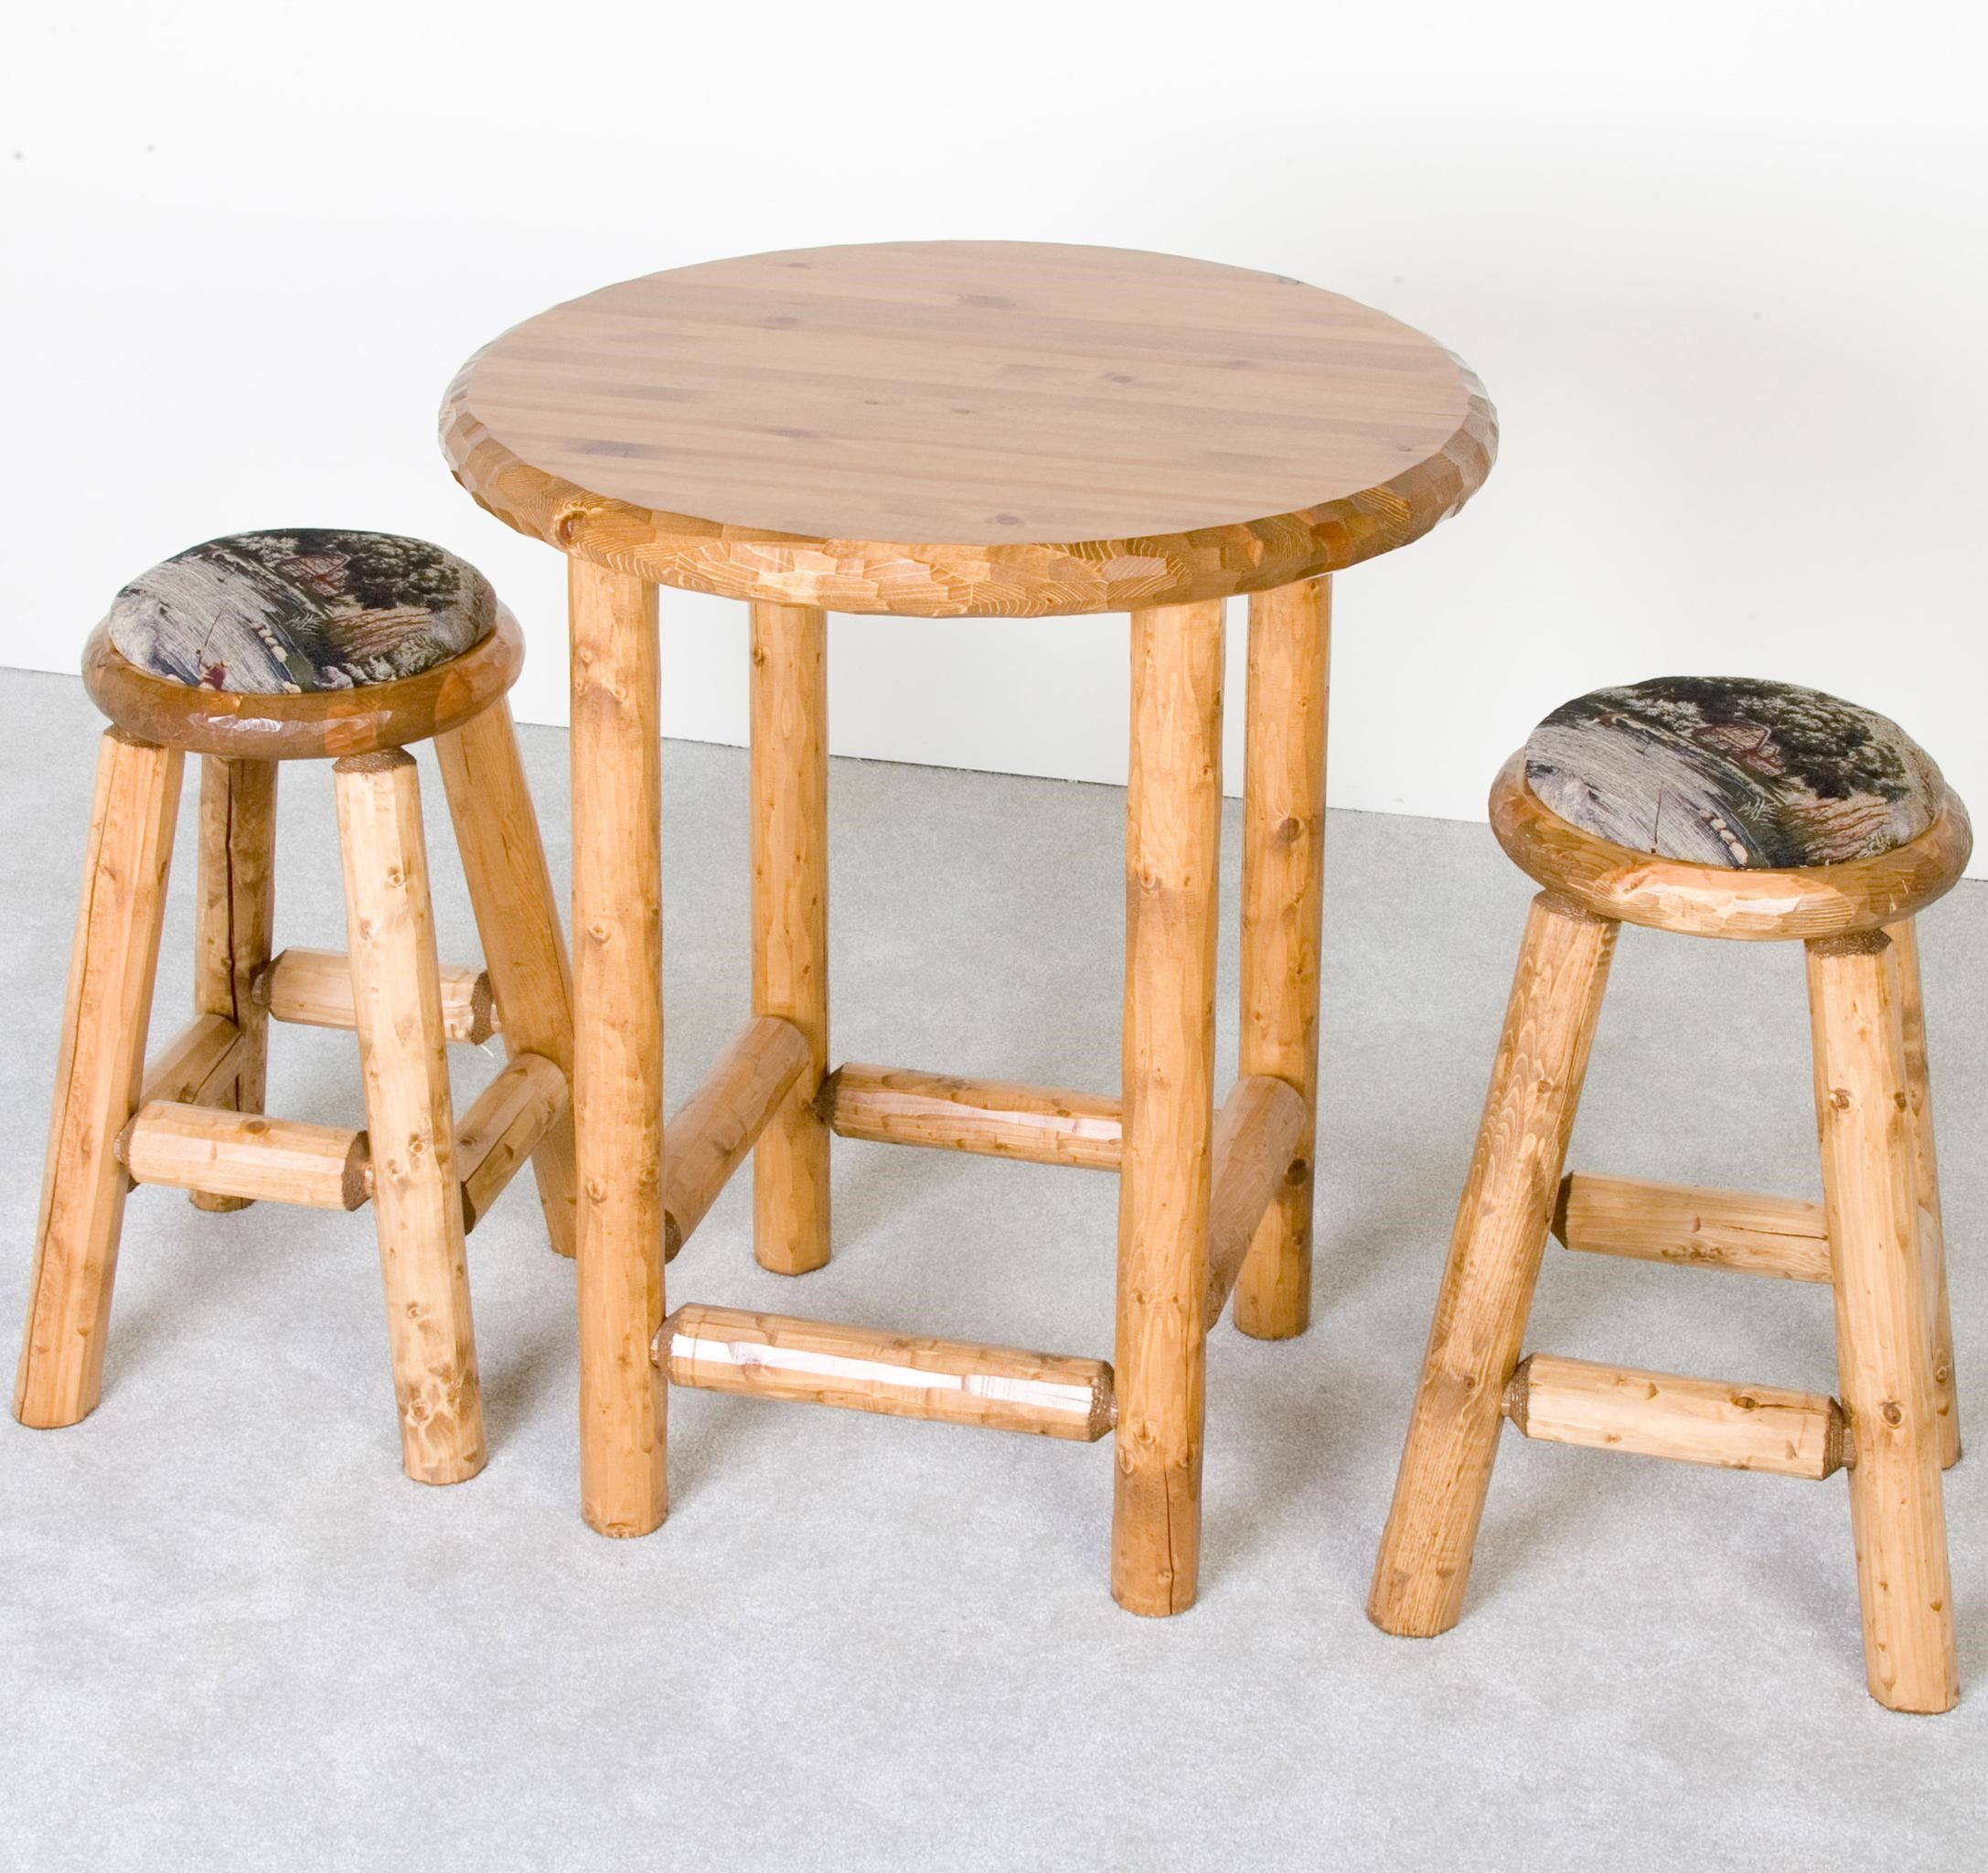 Log Furniture Rustic Pub Table And Upholstered Stools Set   Becker Furniture  World   Pub Table And Stool Set